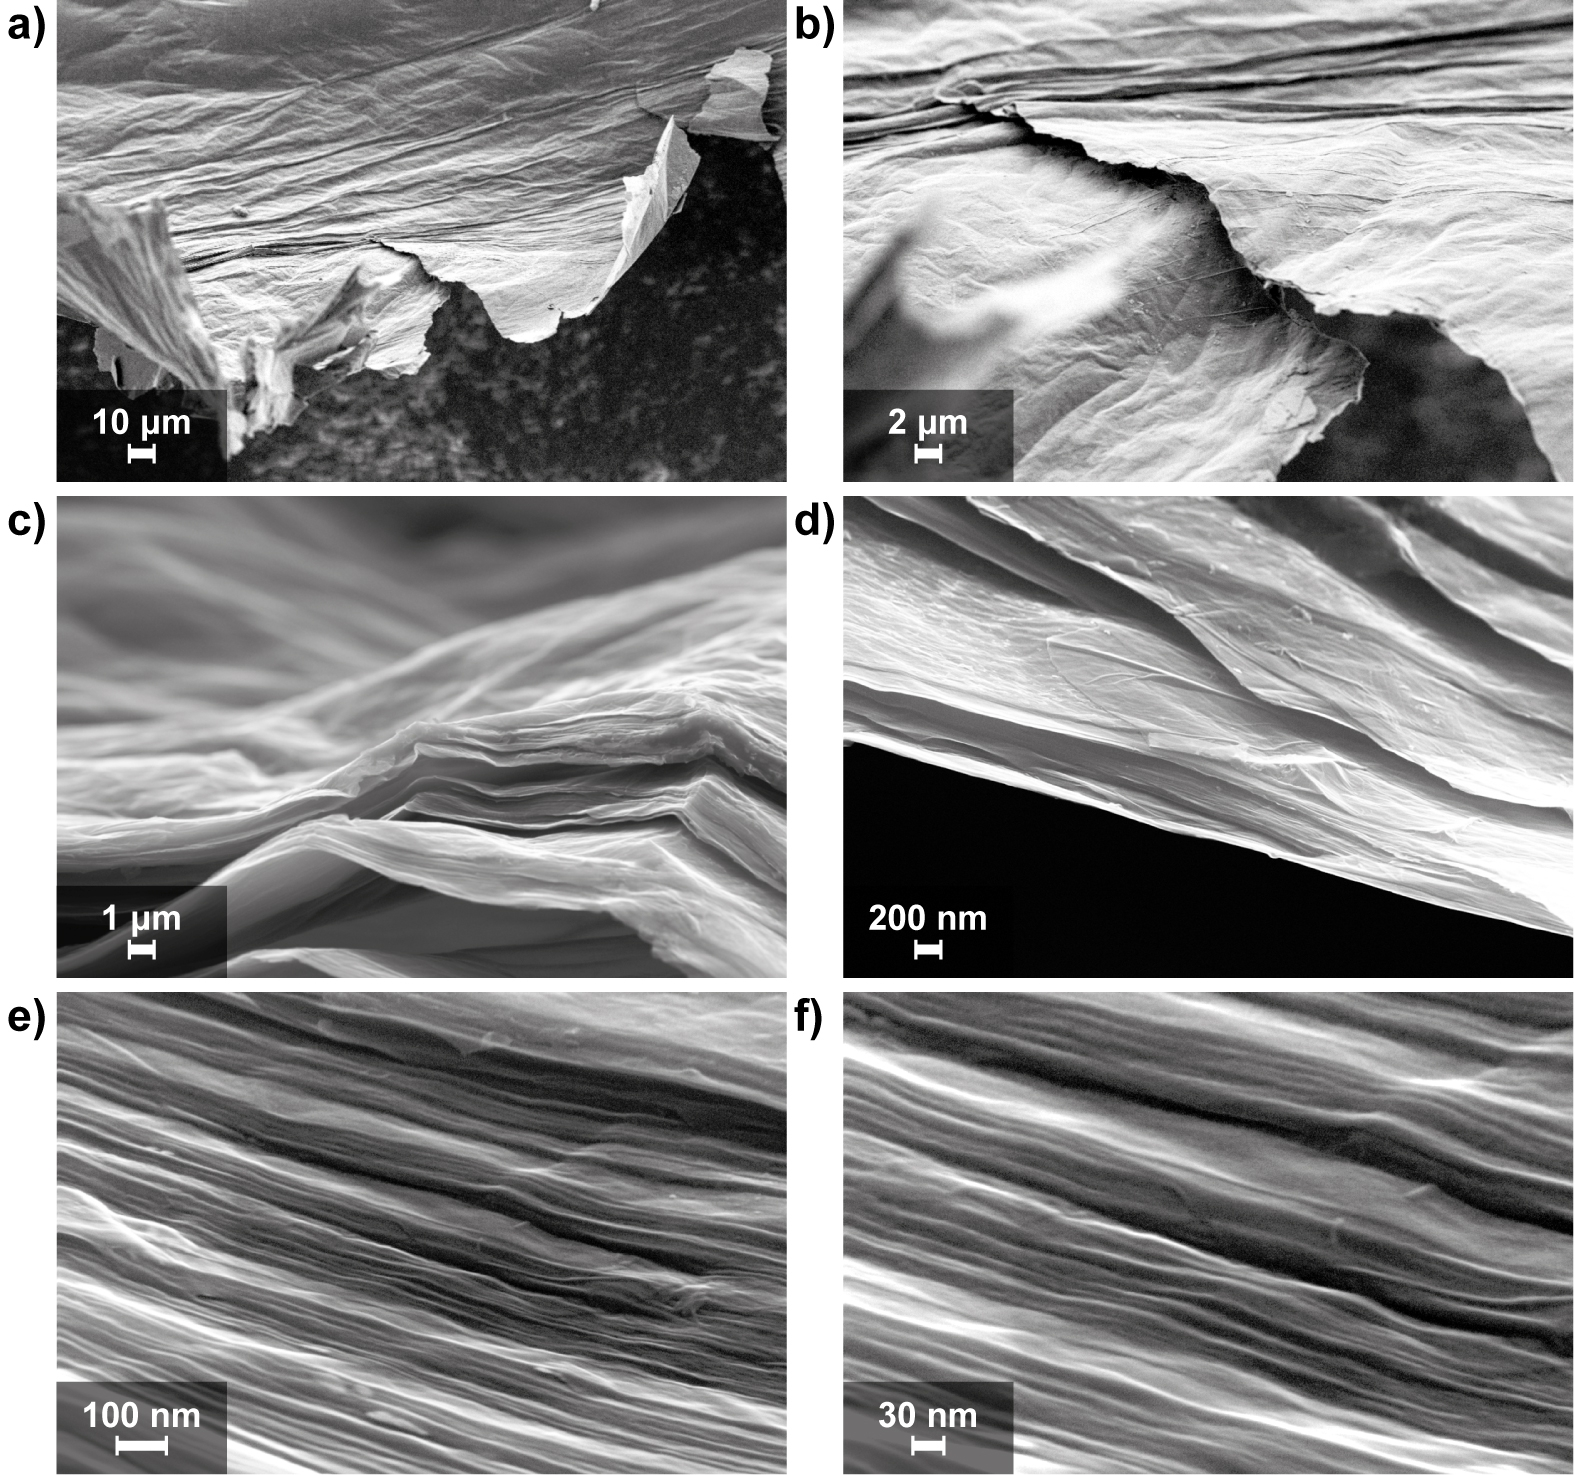 Scanning electron microscopy images show  (especially those at the bottom with a nanometer resolution) the layered, paper-like structure of the synthesised graphene electrode. Source: Paul Scherrer Institute